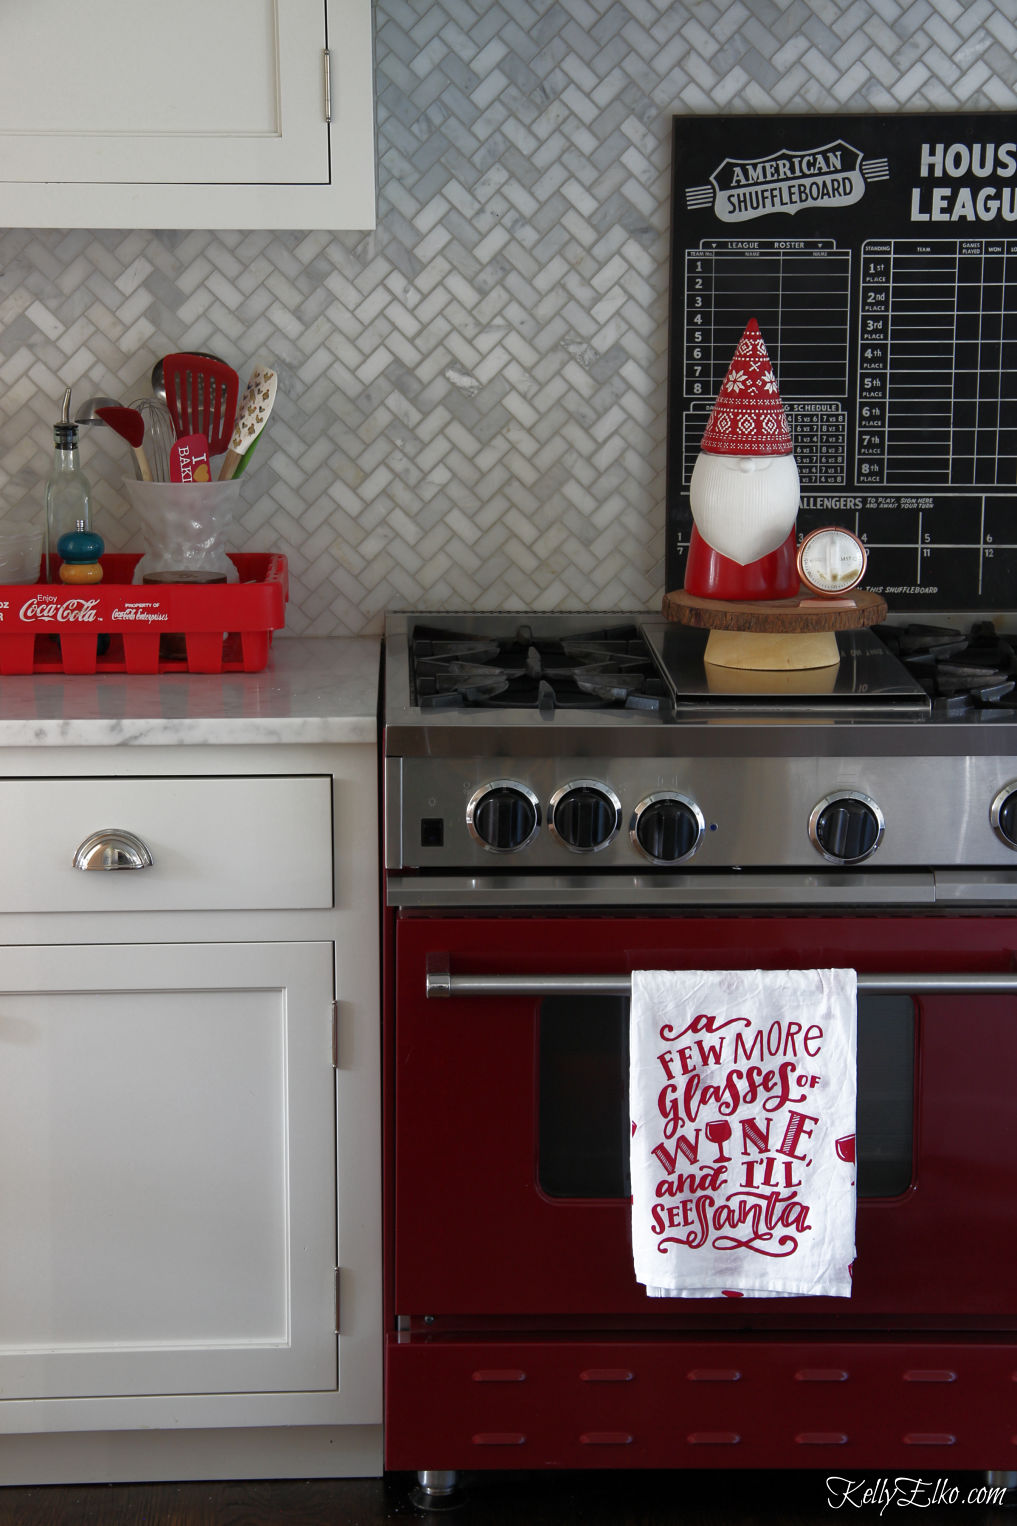 Love this red stove in this Christmas kitchen kellyelko.com #whitekitchen #redstove #christmaskitchen #farmhousechristmas #christmasdecor #gnome #vintagechristmas